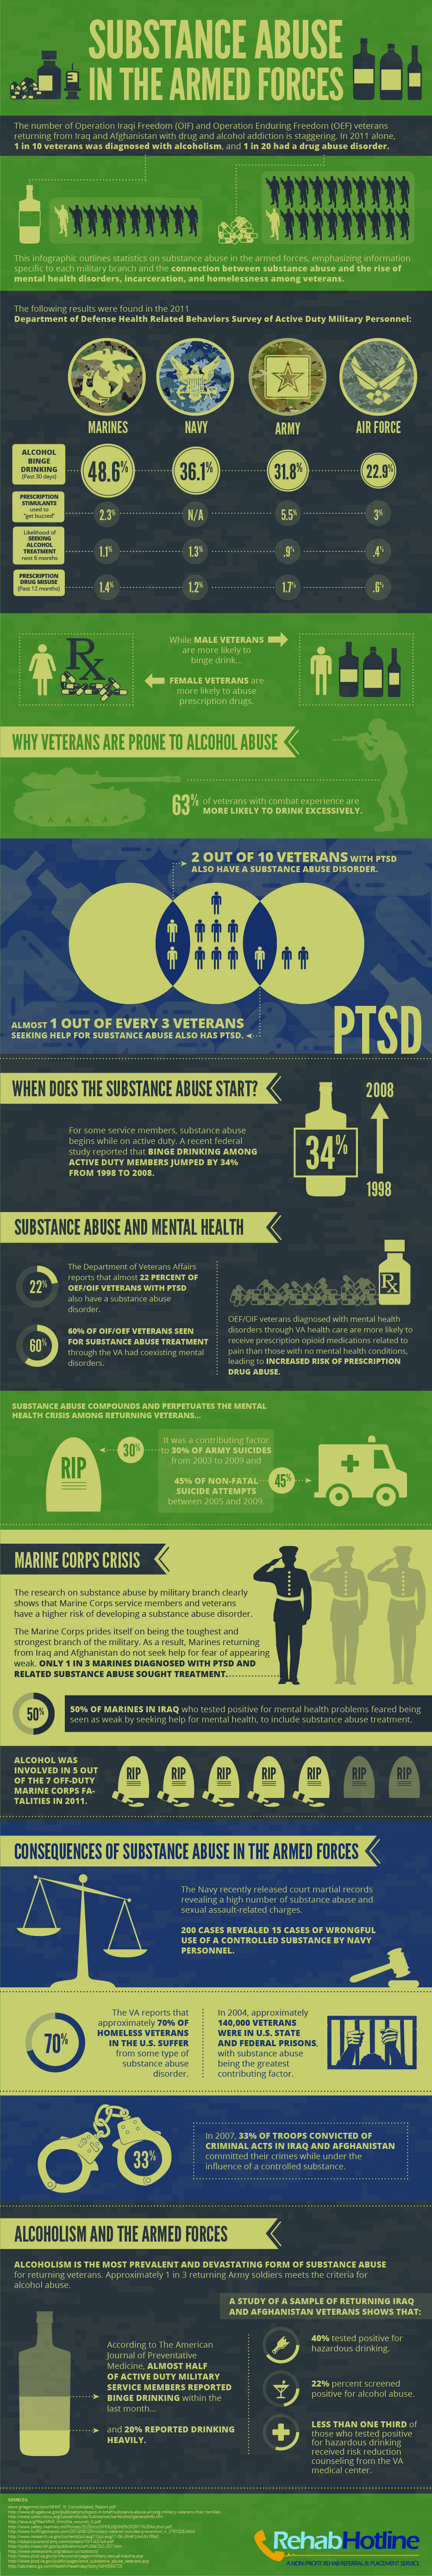 Substance Abuse in the Armed Forces